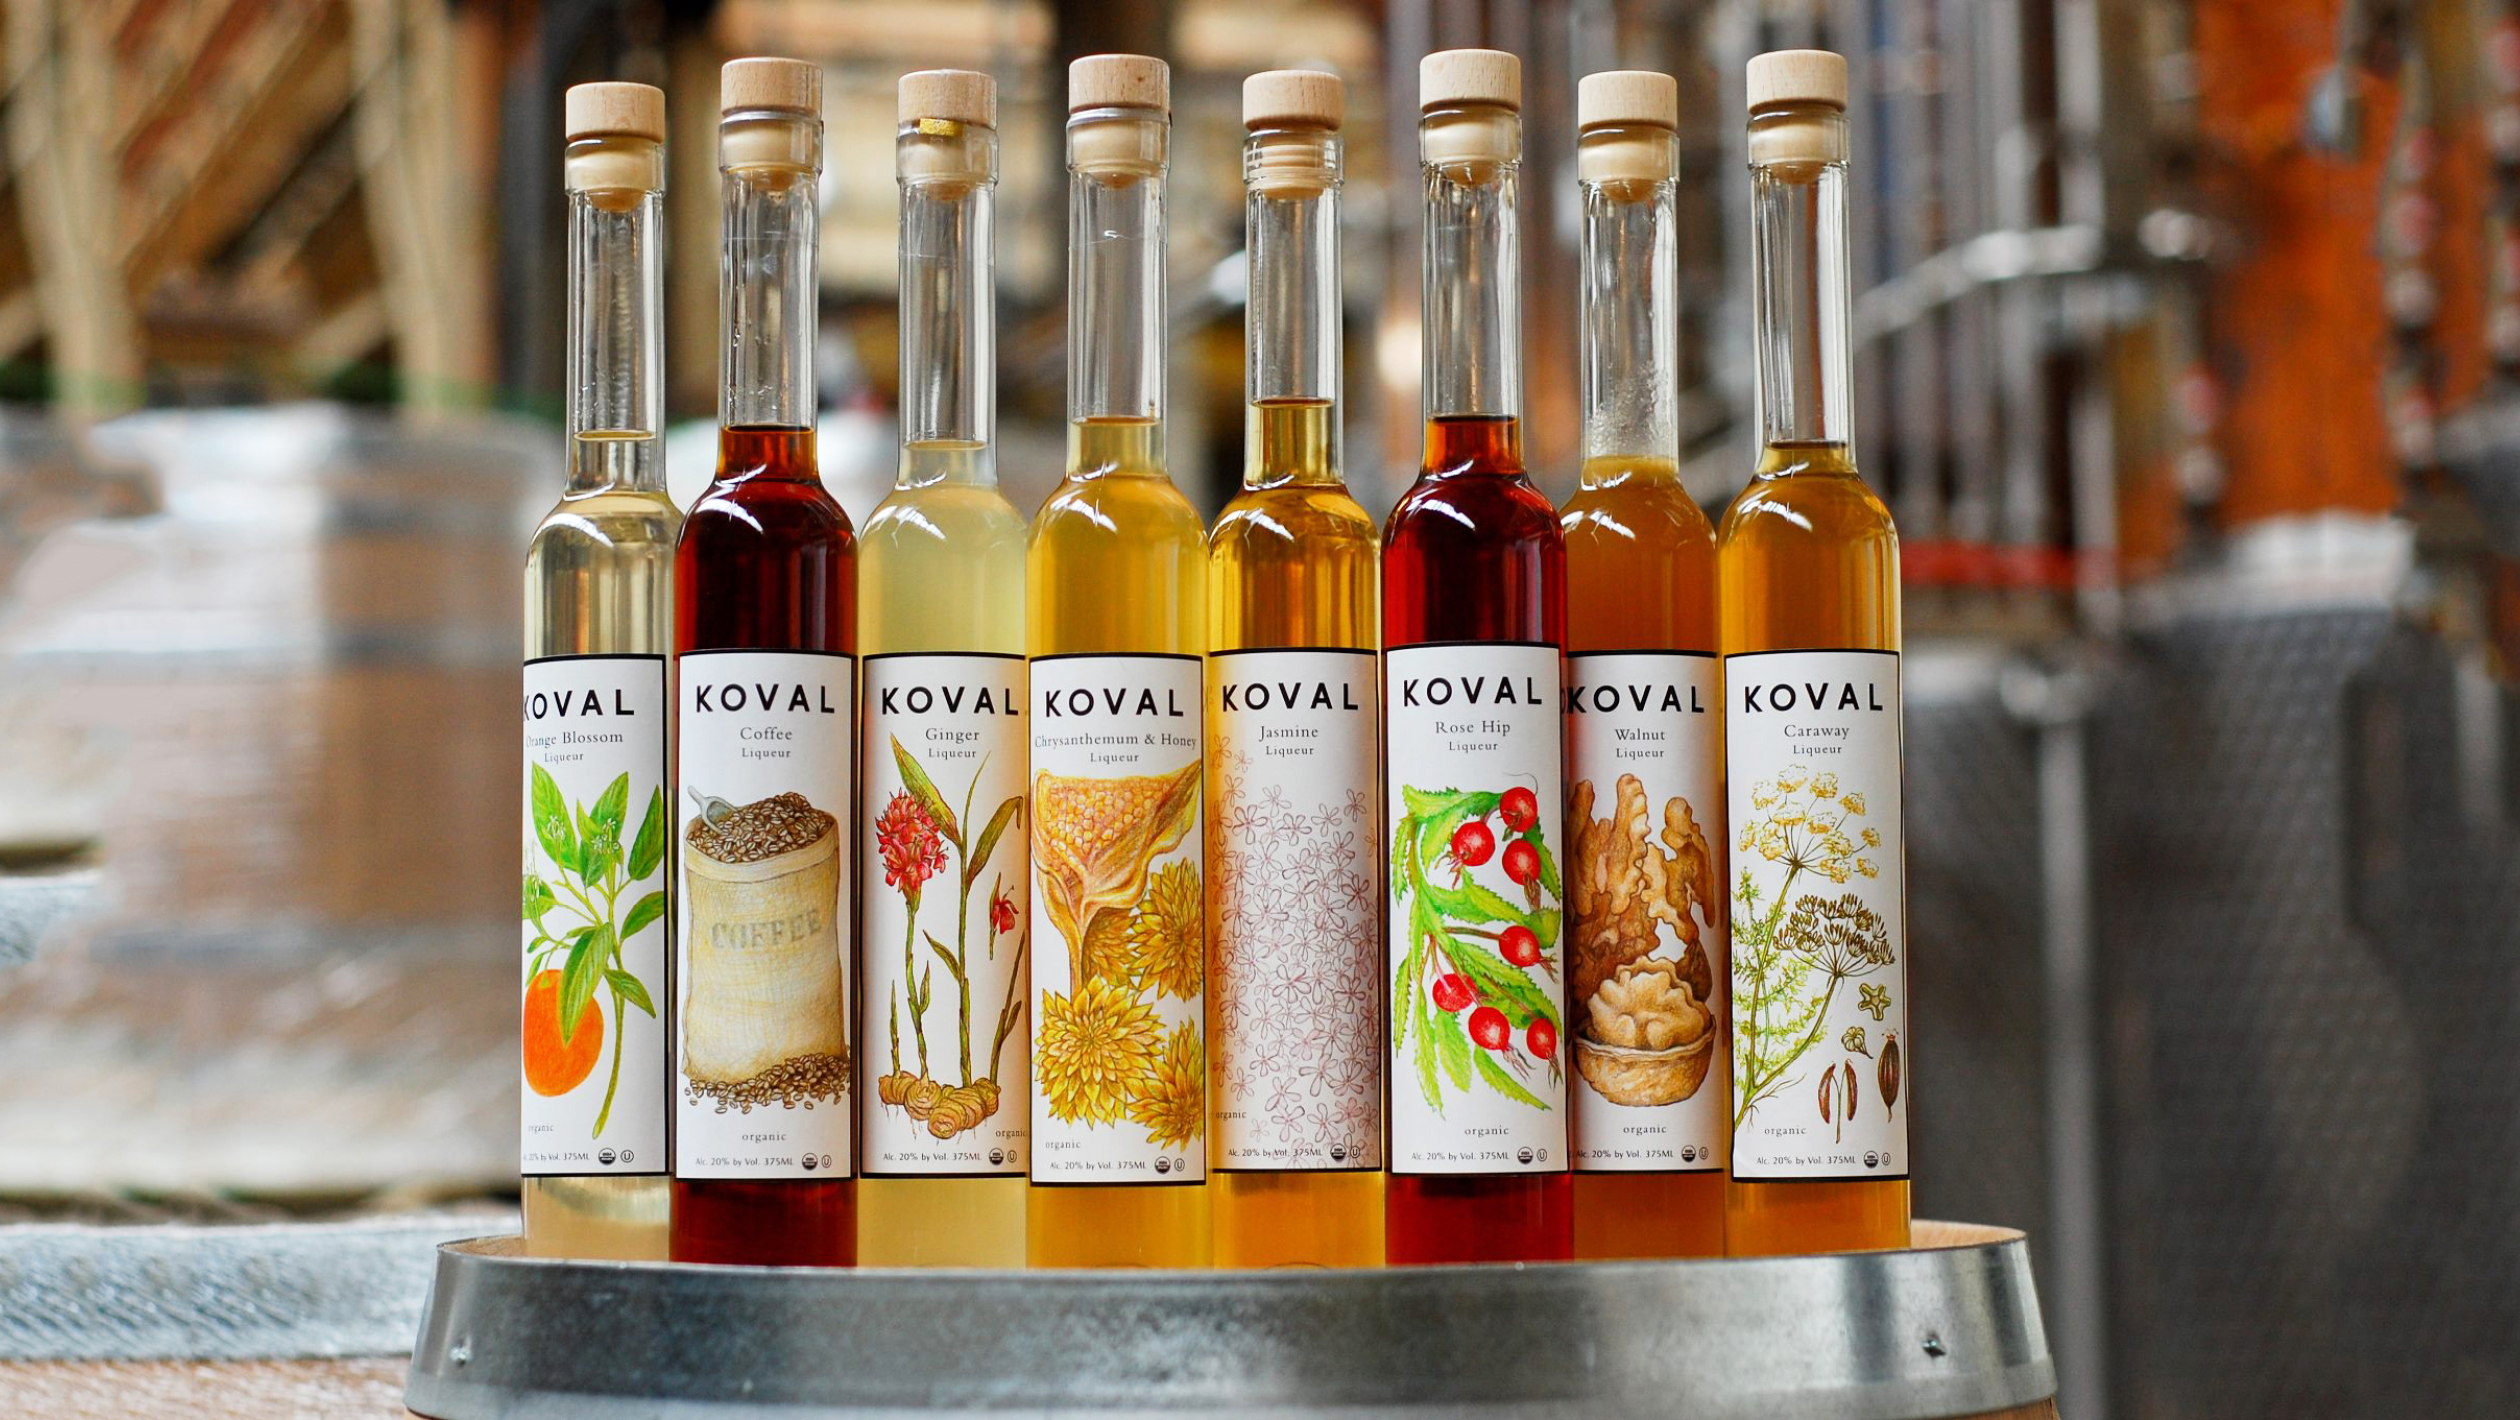 A variety of Koval Whiskey flavors